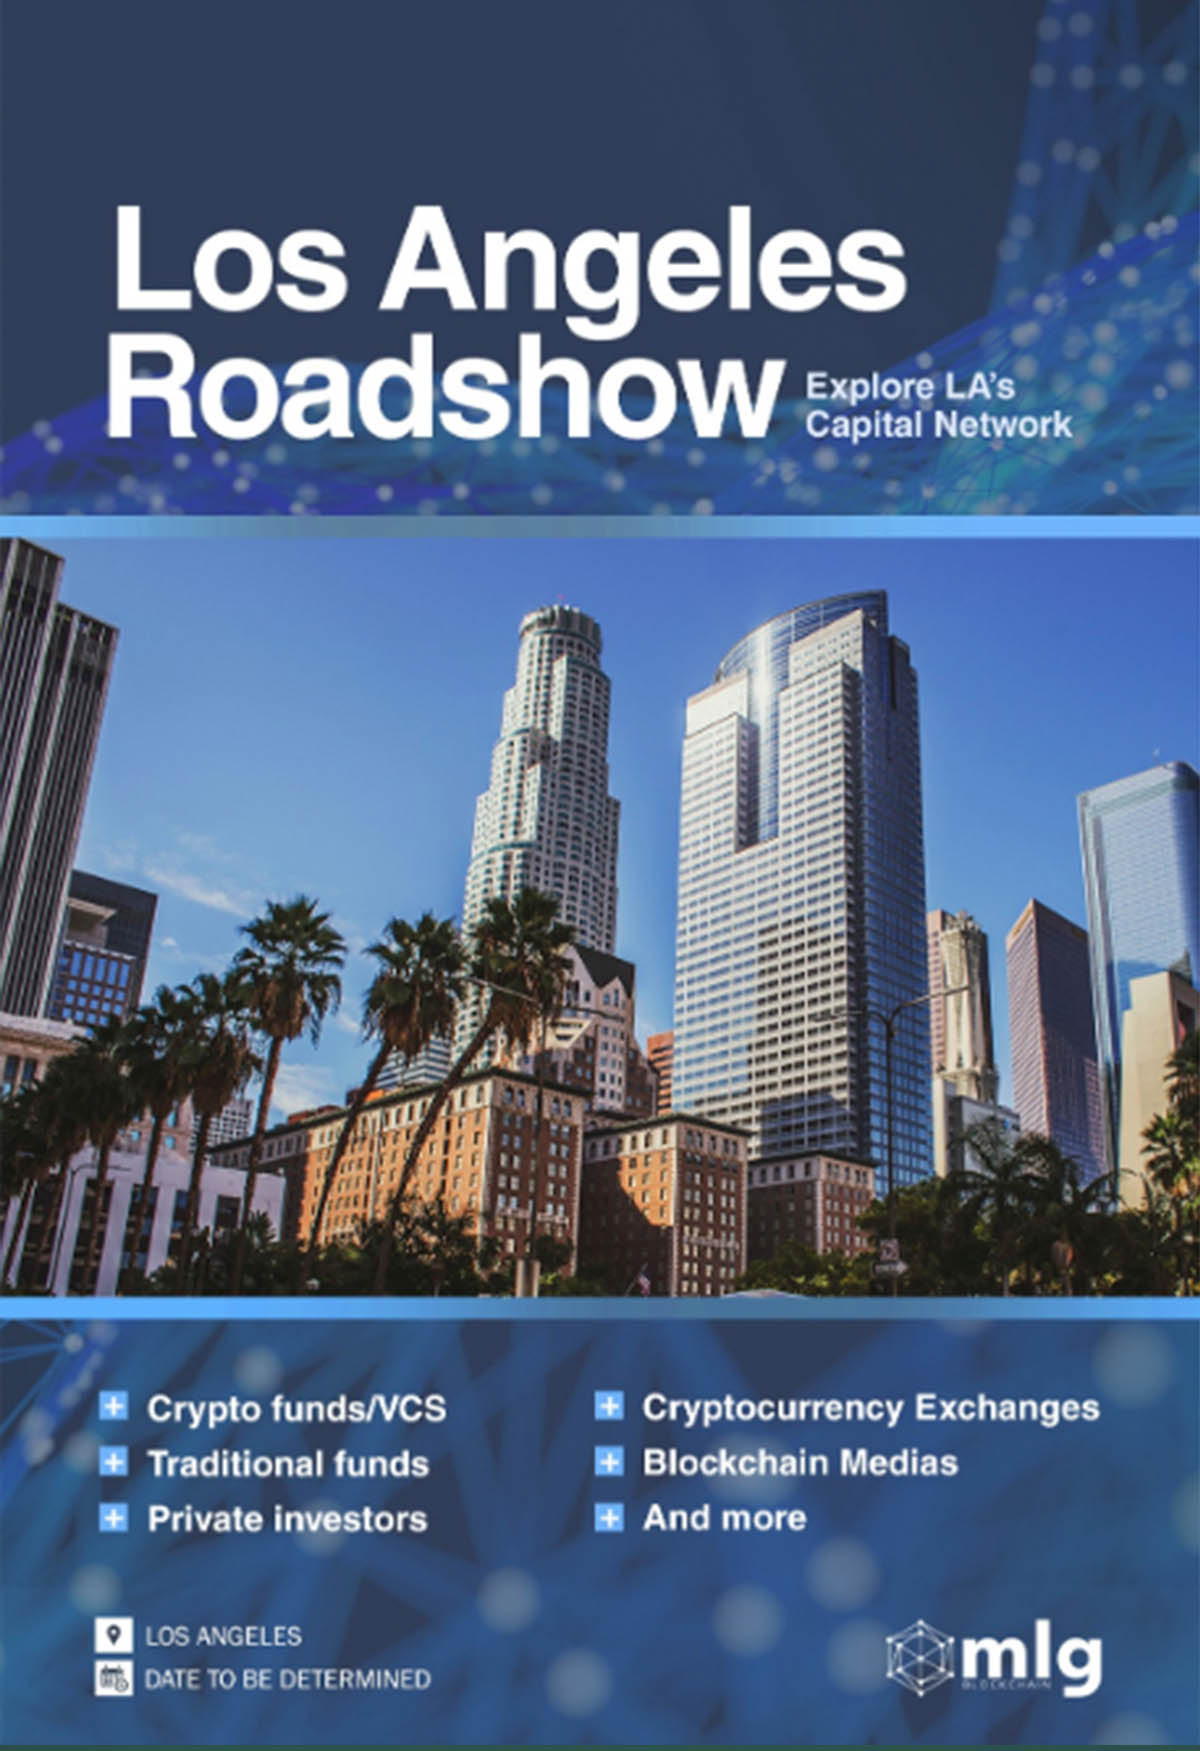 Los Angeles Blockchain Roadshow